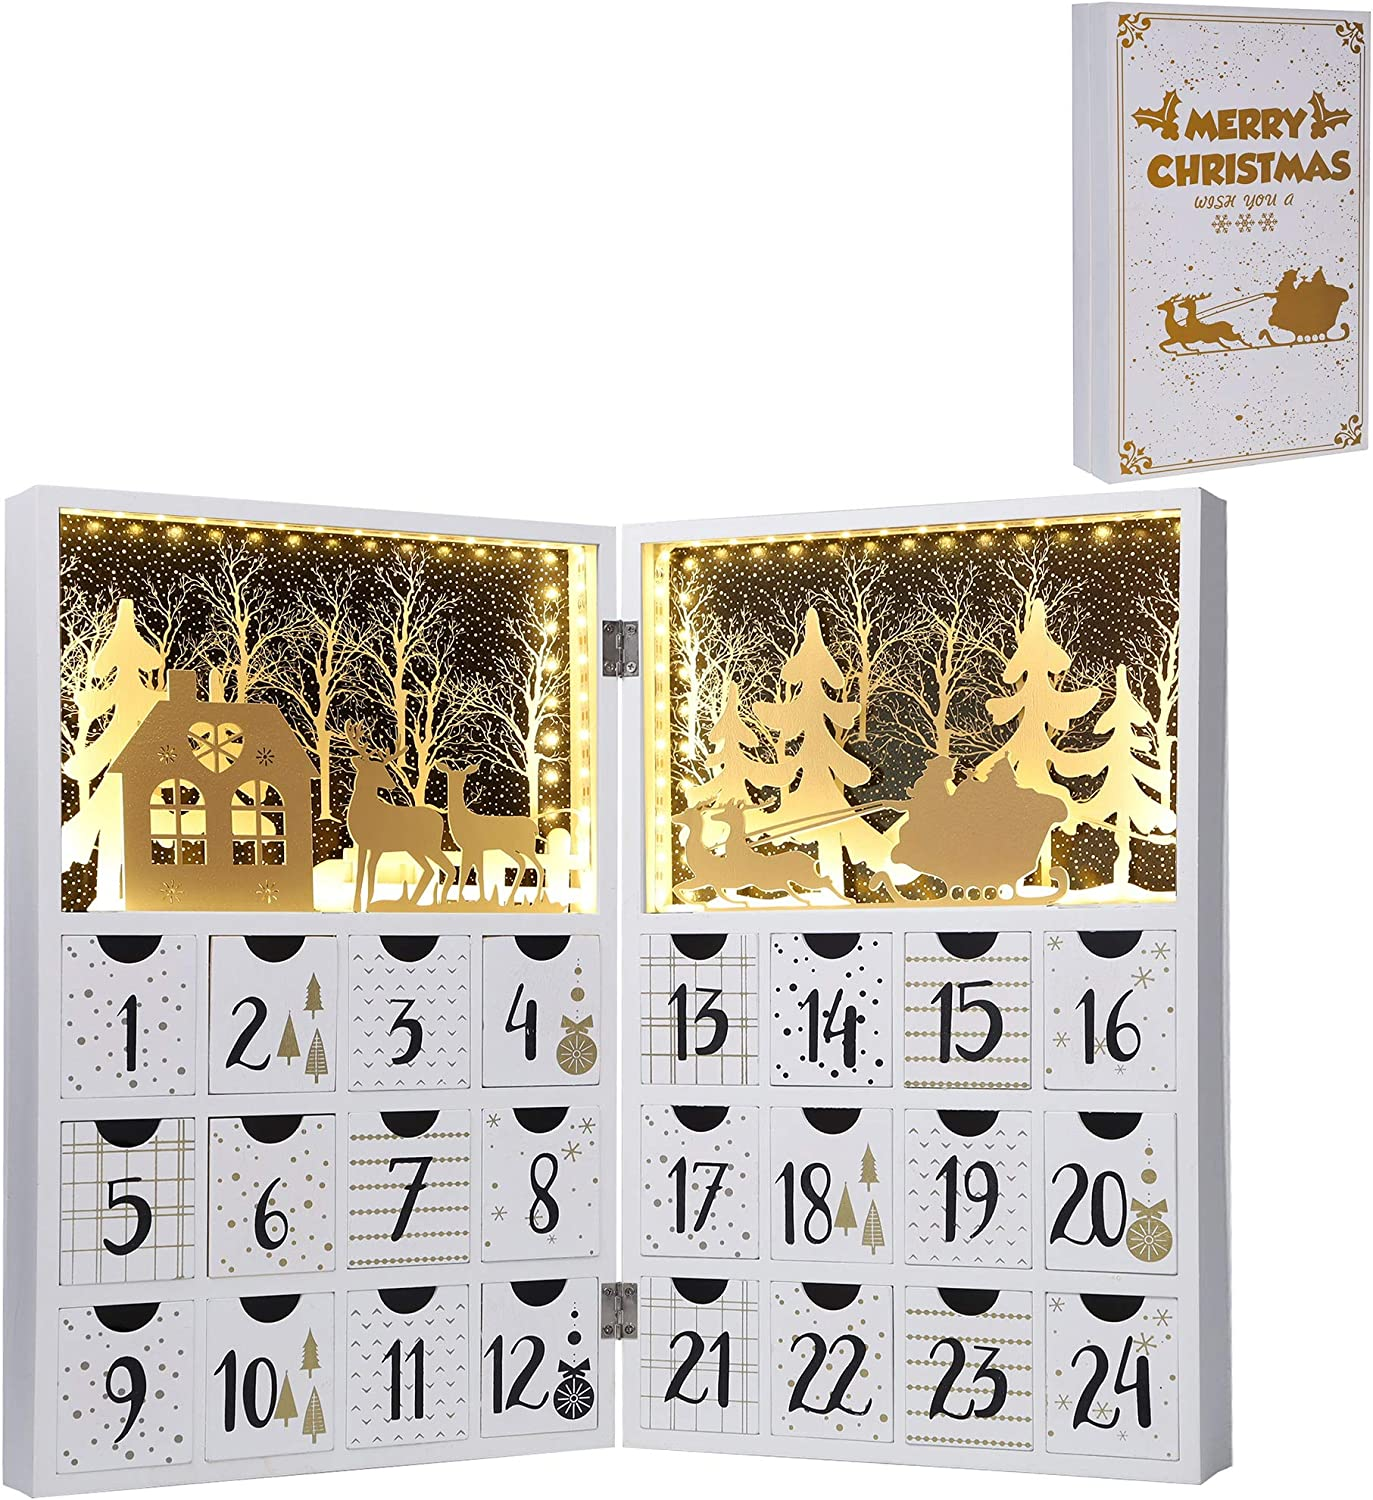 Juegoal Pre Lit White Advent Calendar Wooden Lighted Christmas Book, Premium Hand Painted Christmas 24 Drawers Countdown to Christmas, Refillable Wooden Advent, Cute Holiday Decoration